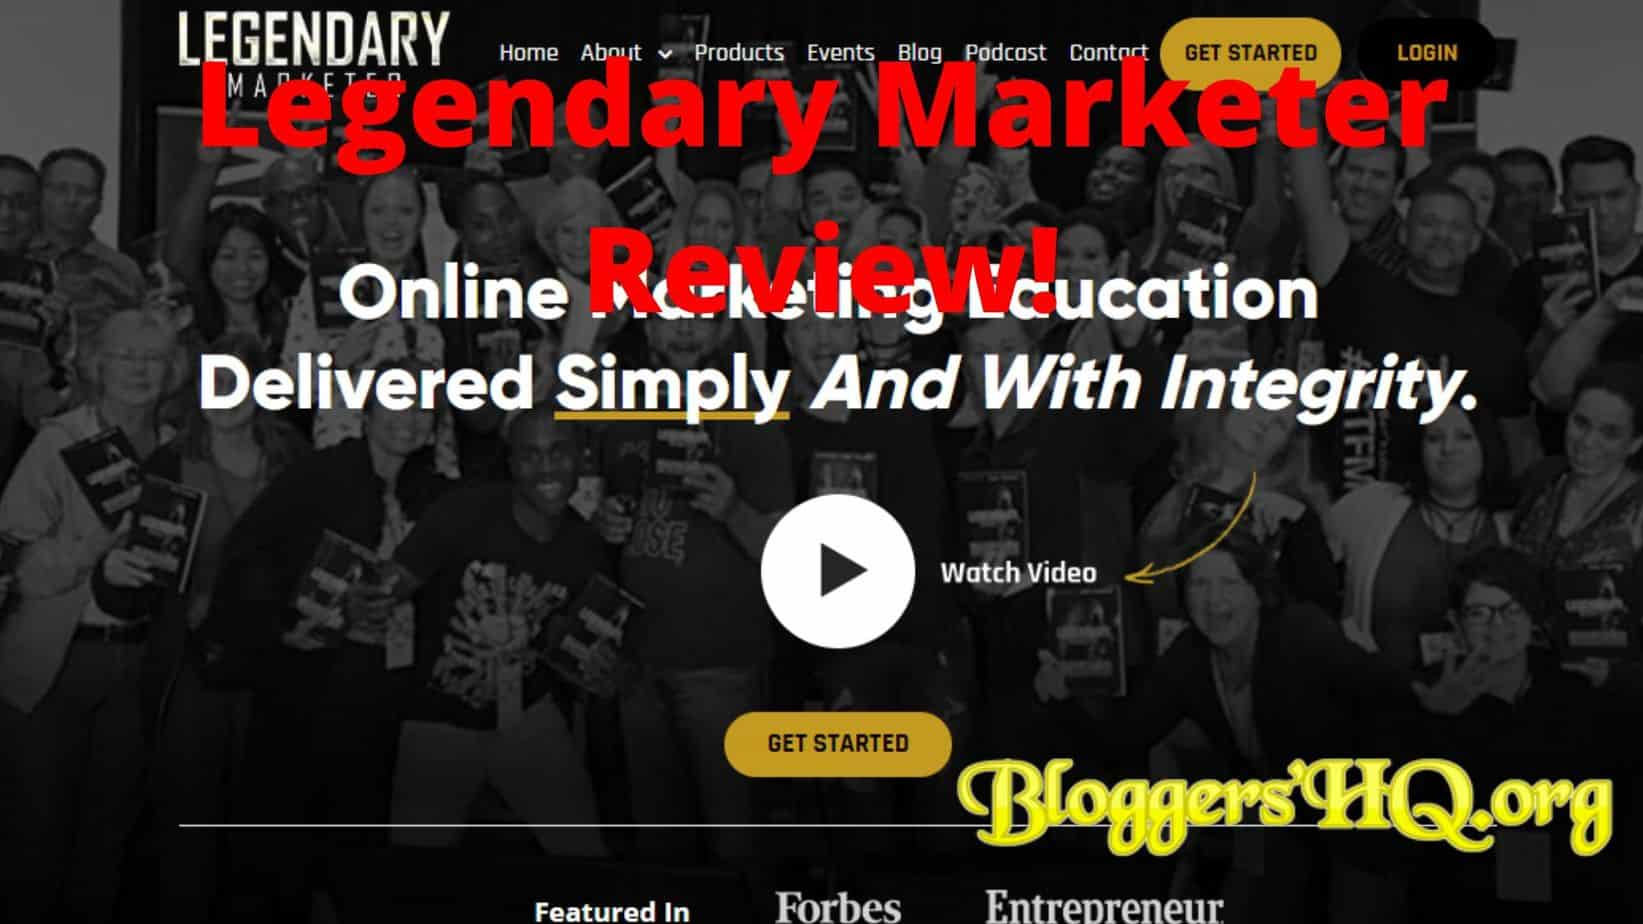 How Much Will Legendary Marketer  Internet Marketing Program Cost